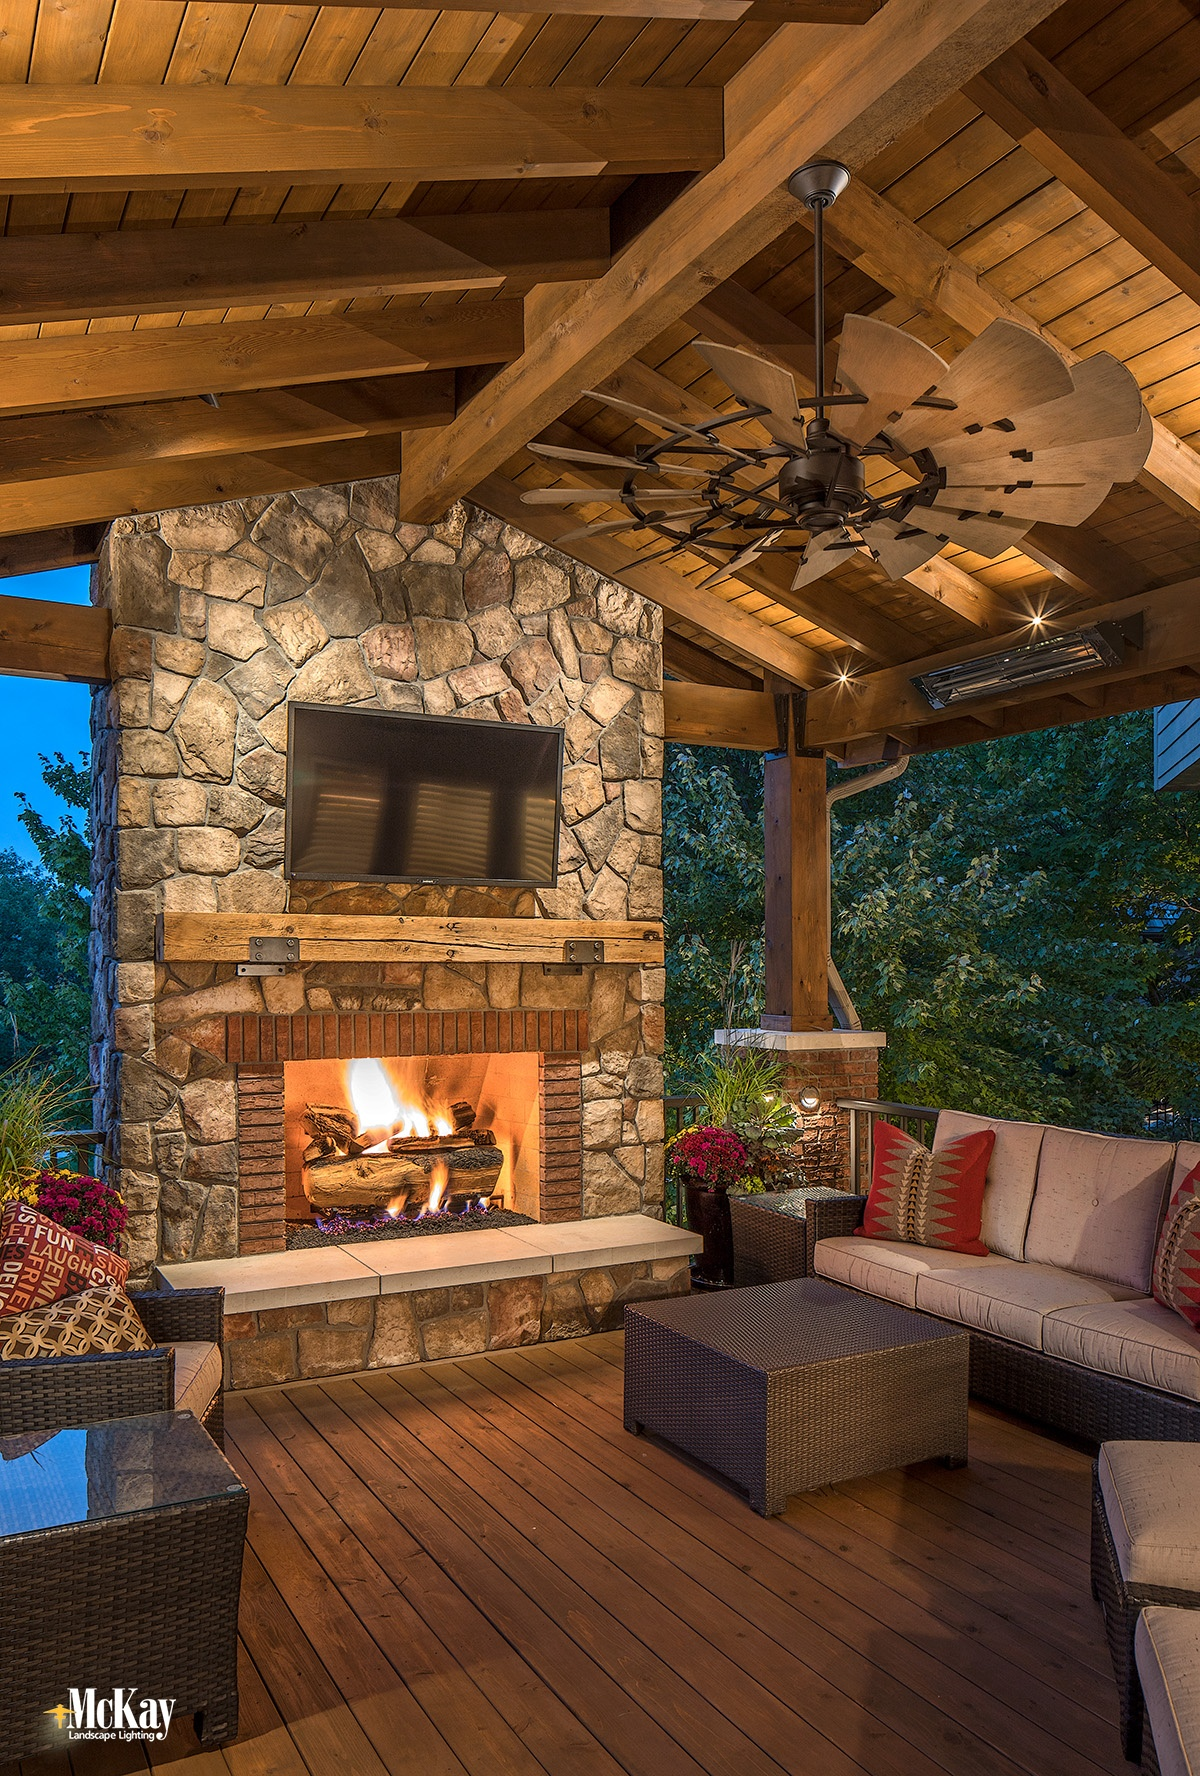 Here's How Landscape Lighting can Make Your Deck and Extension of Your Home | Blog Post by McKay Landscape Lighting Omaha, Nebraska